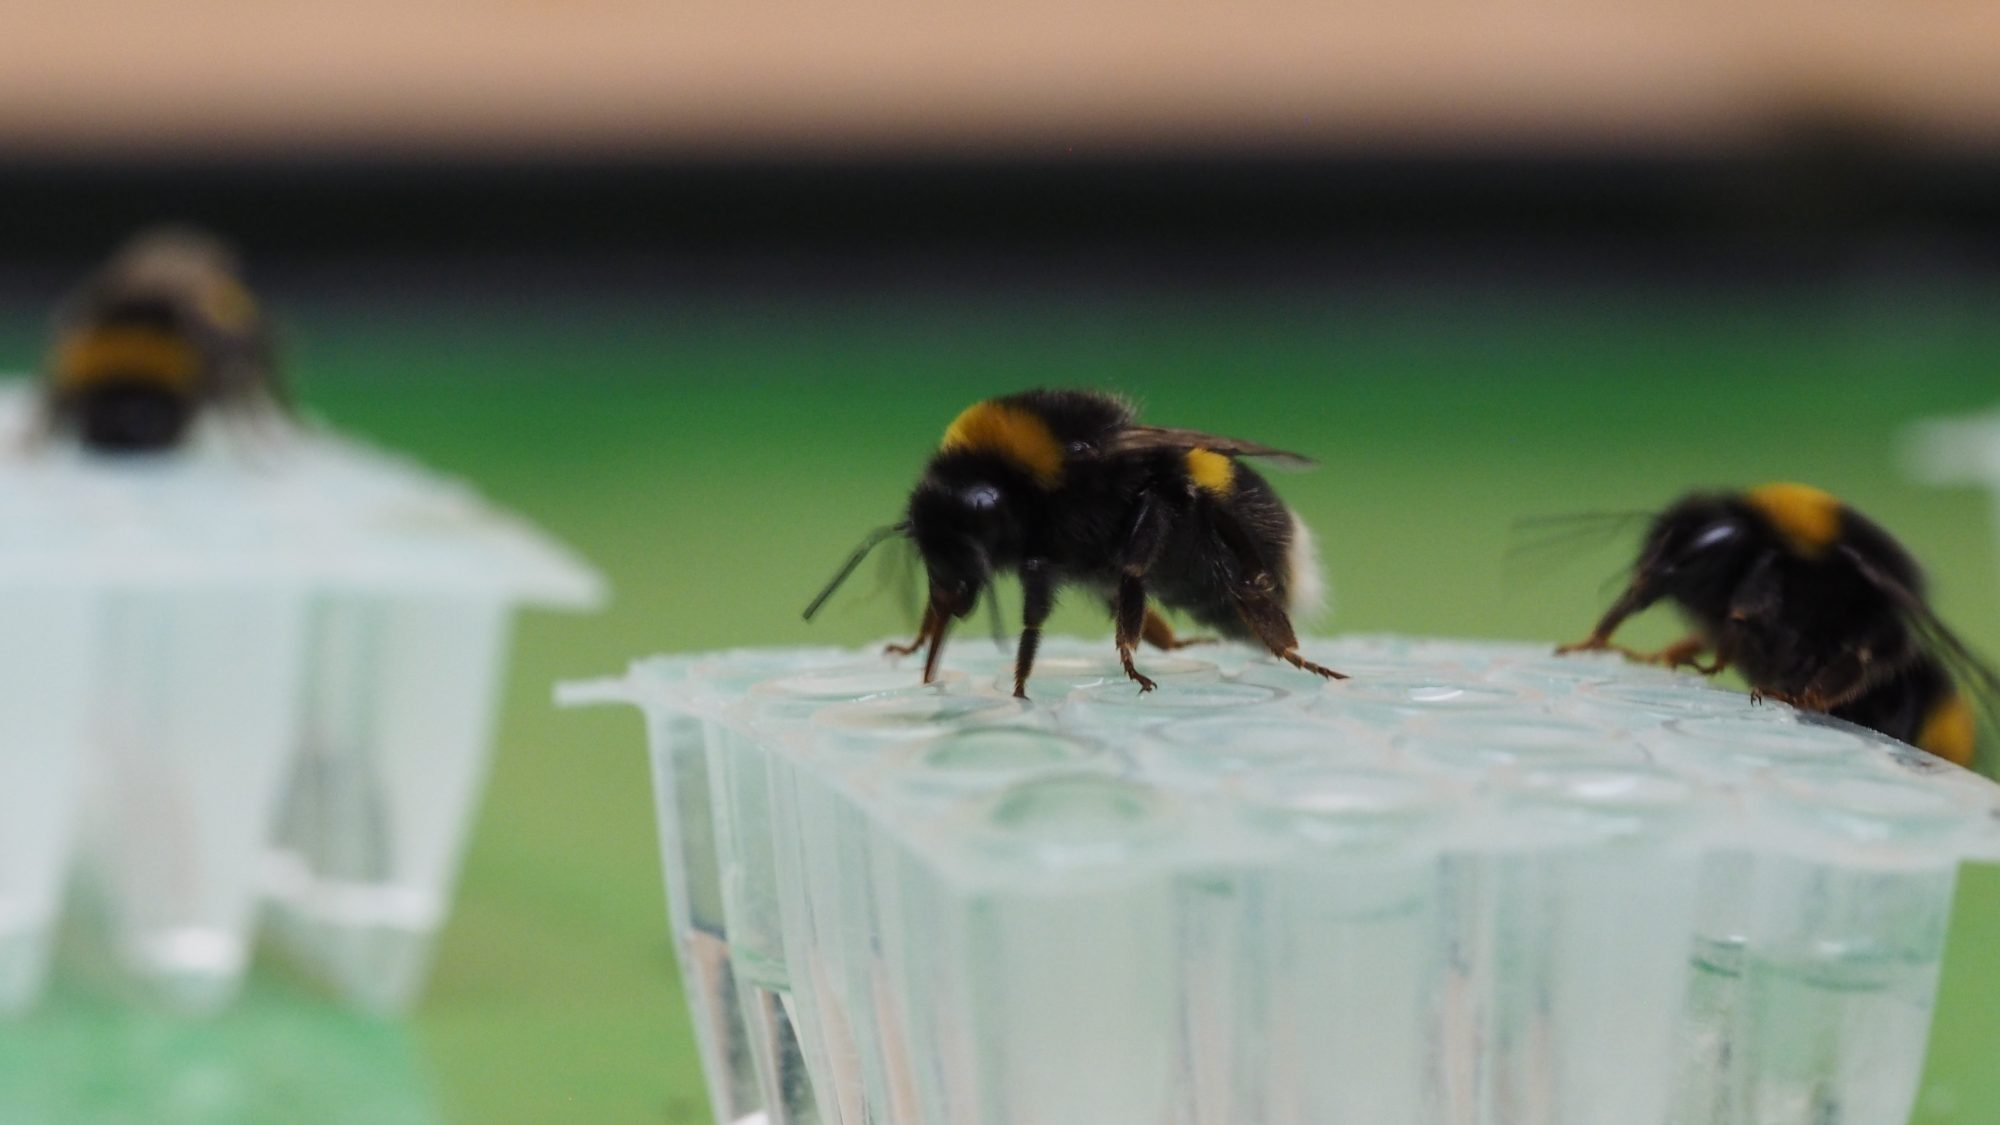 Bumblebees drink nectar from flowers.